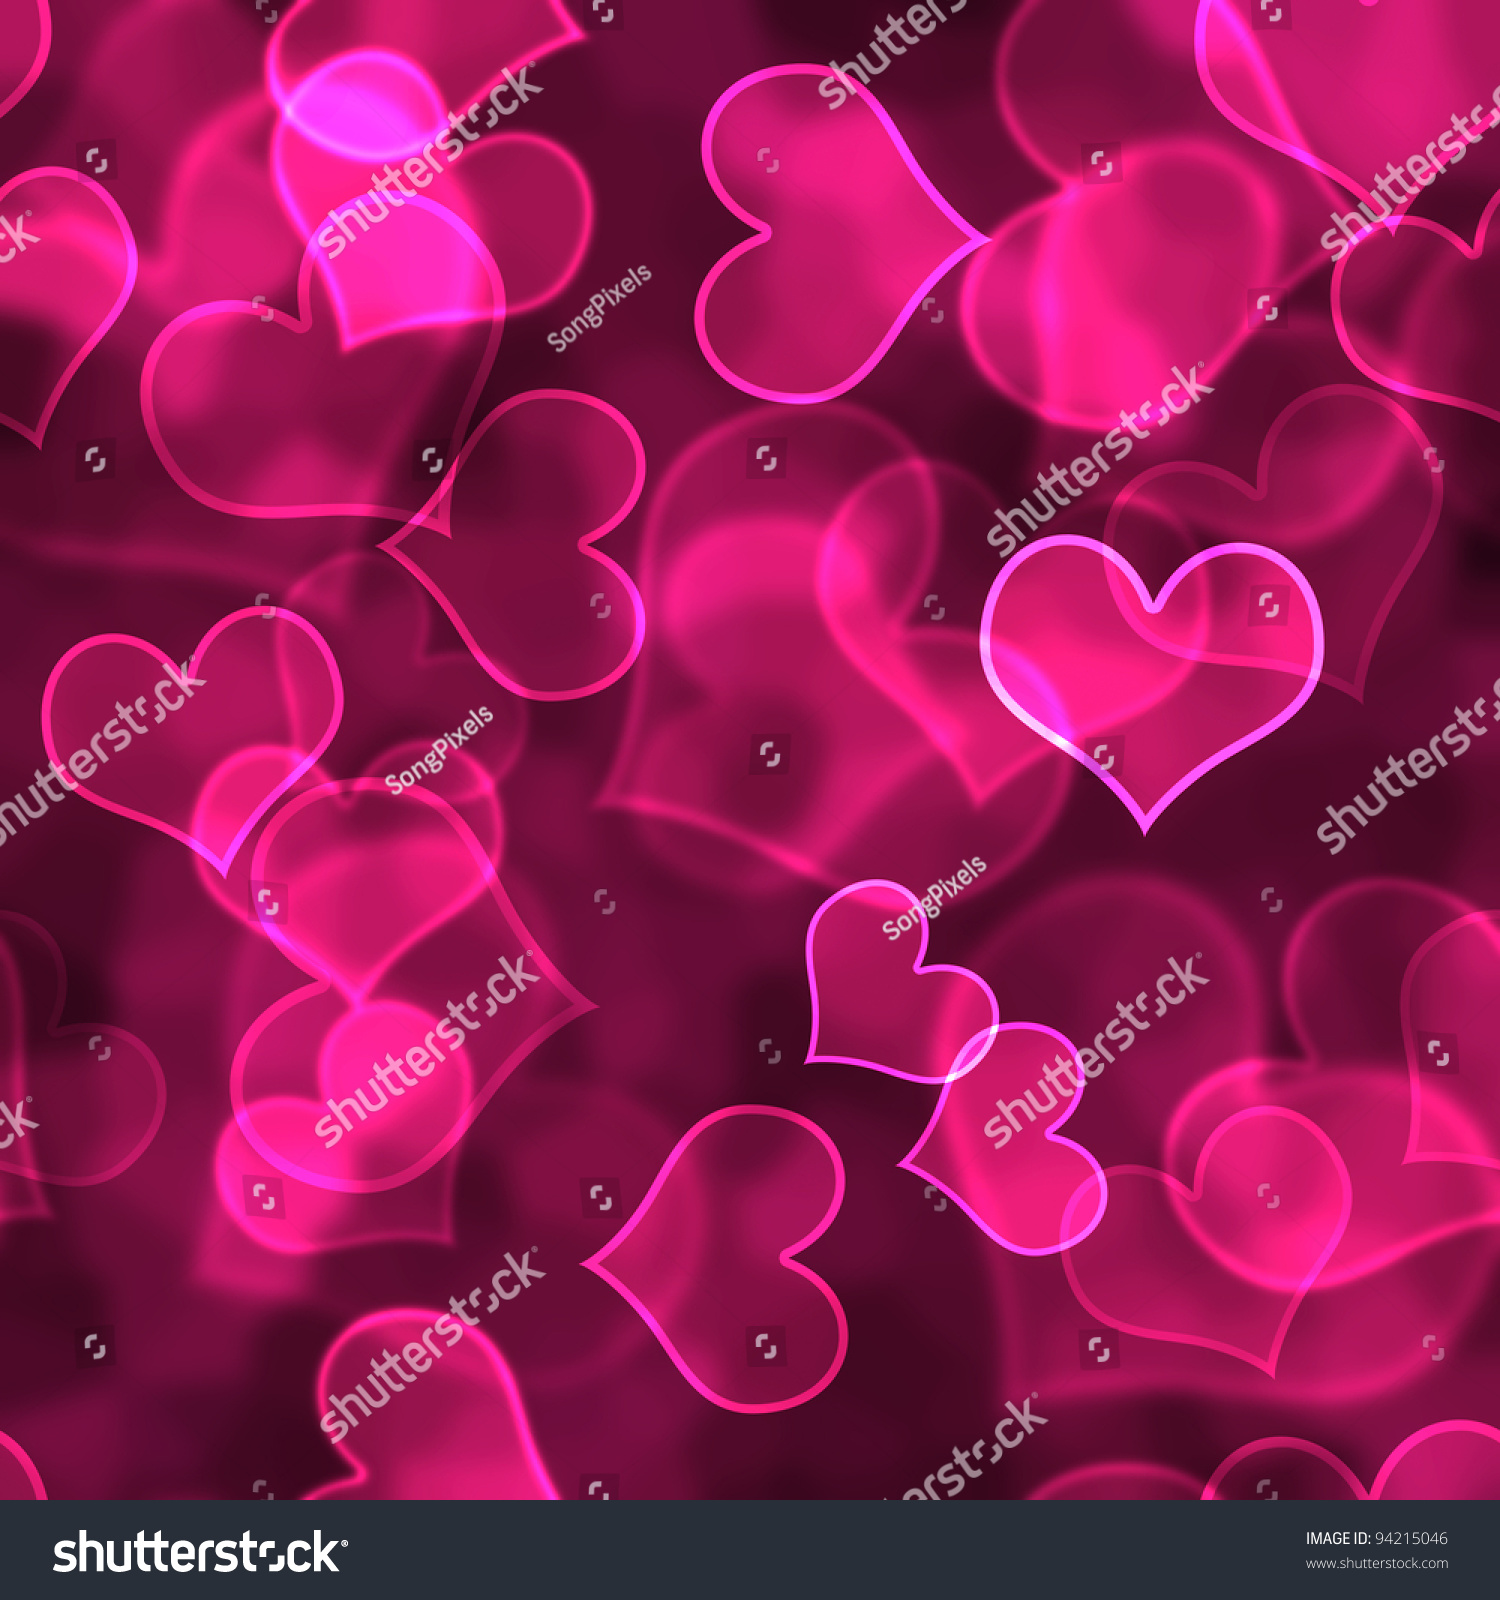 Cute Girly Skull Wallpapers Hot Pink Heart Background Wallpaper Stock Photo 94215046